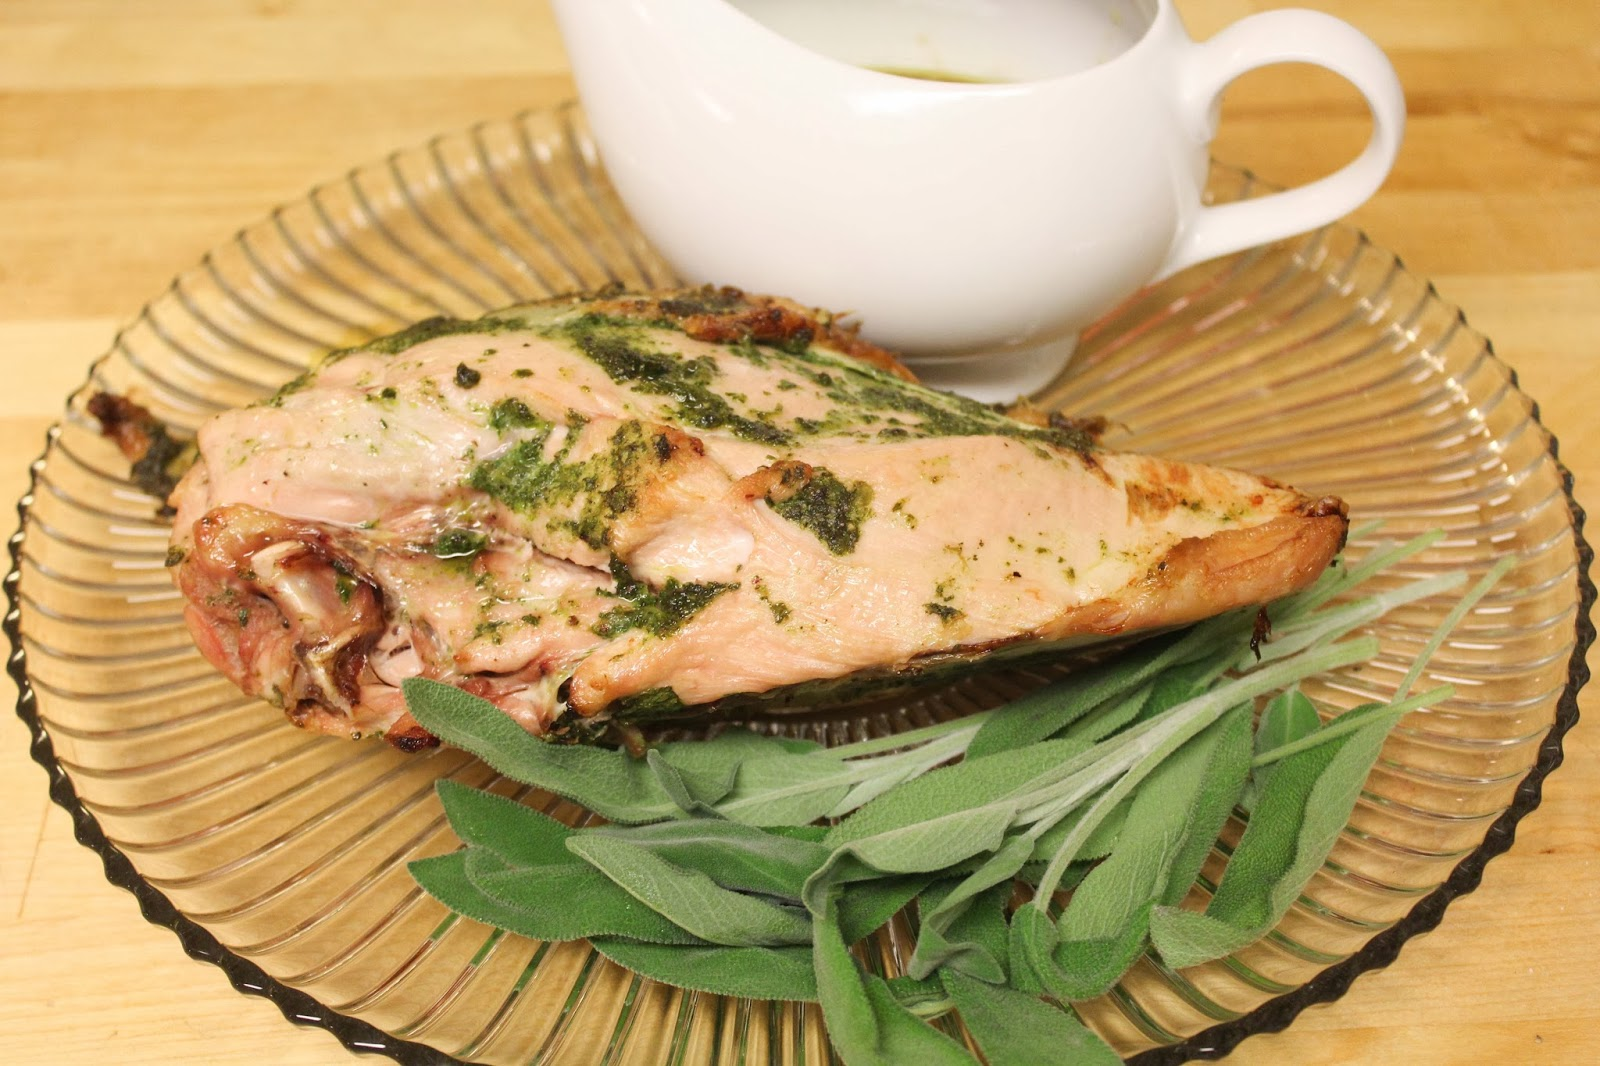 The No Pressure Cooker: Herb Rubbed Turkey with Apple Cider Gravy